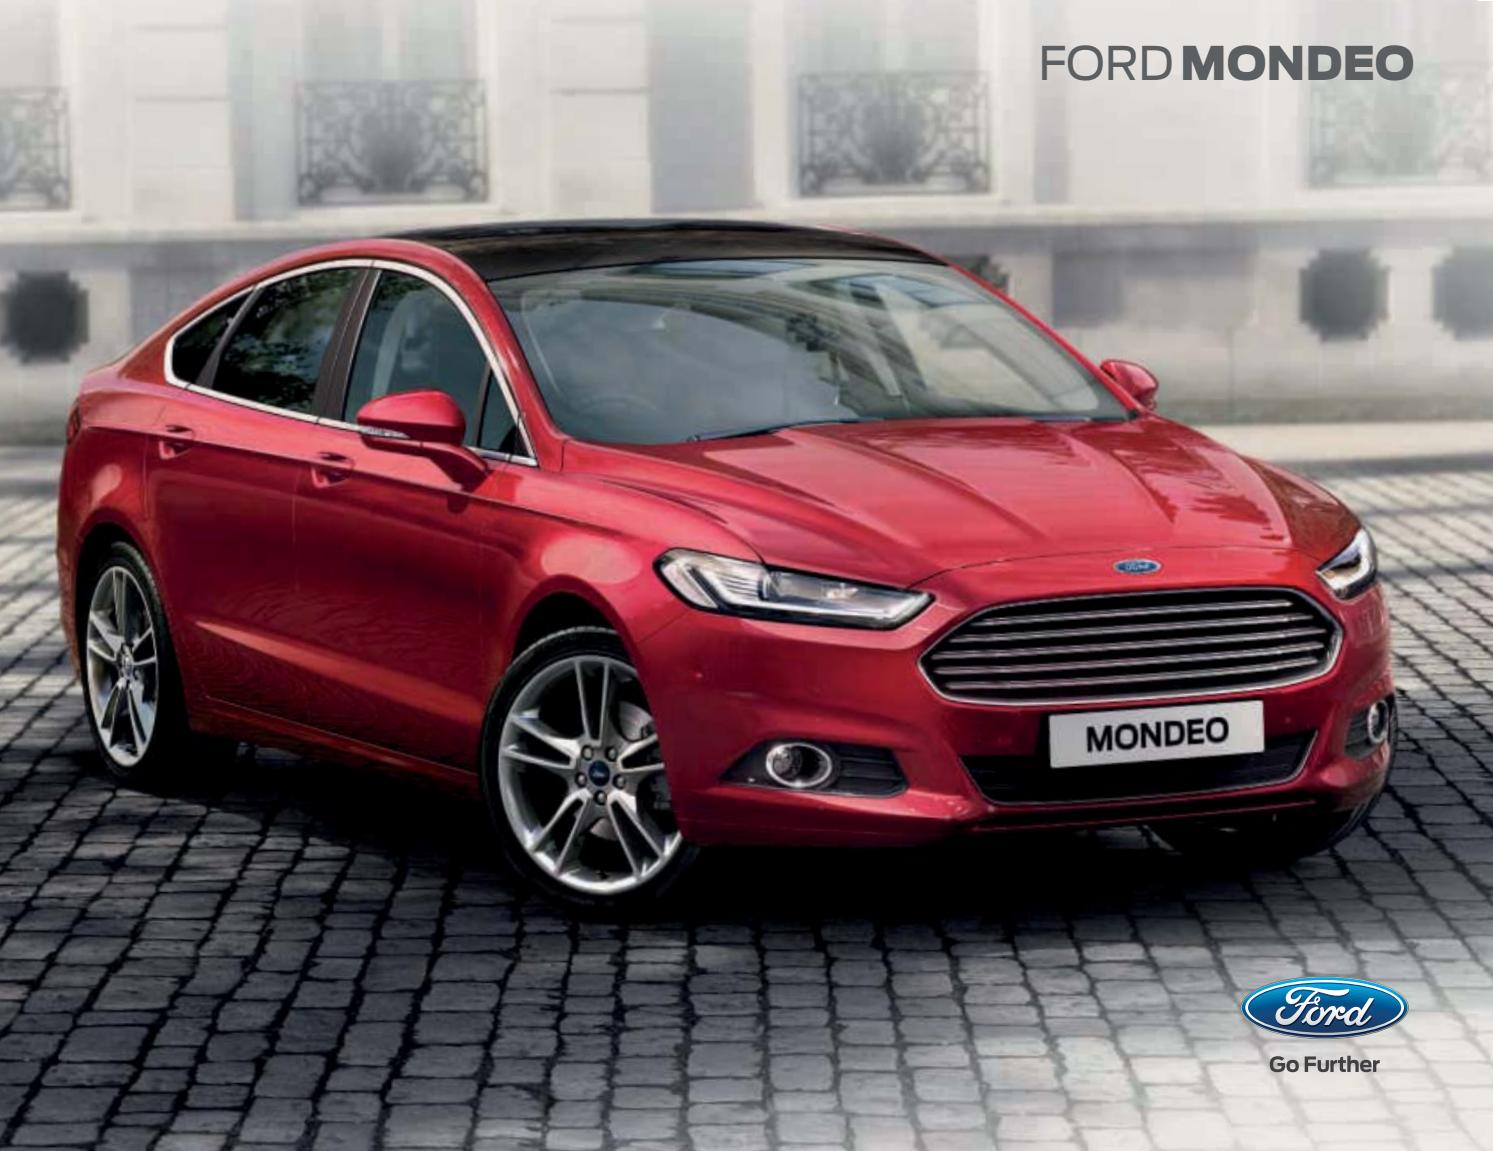 ford mondeo brochure 2016 by mustapha mondeo issuu. Black Bedroom Furniture Sets. Home Design Ideas